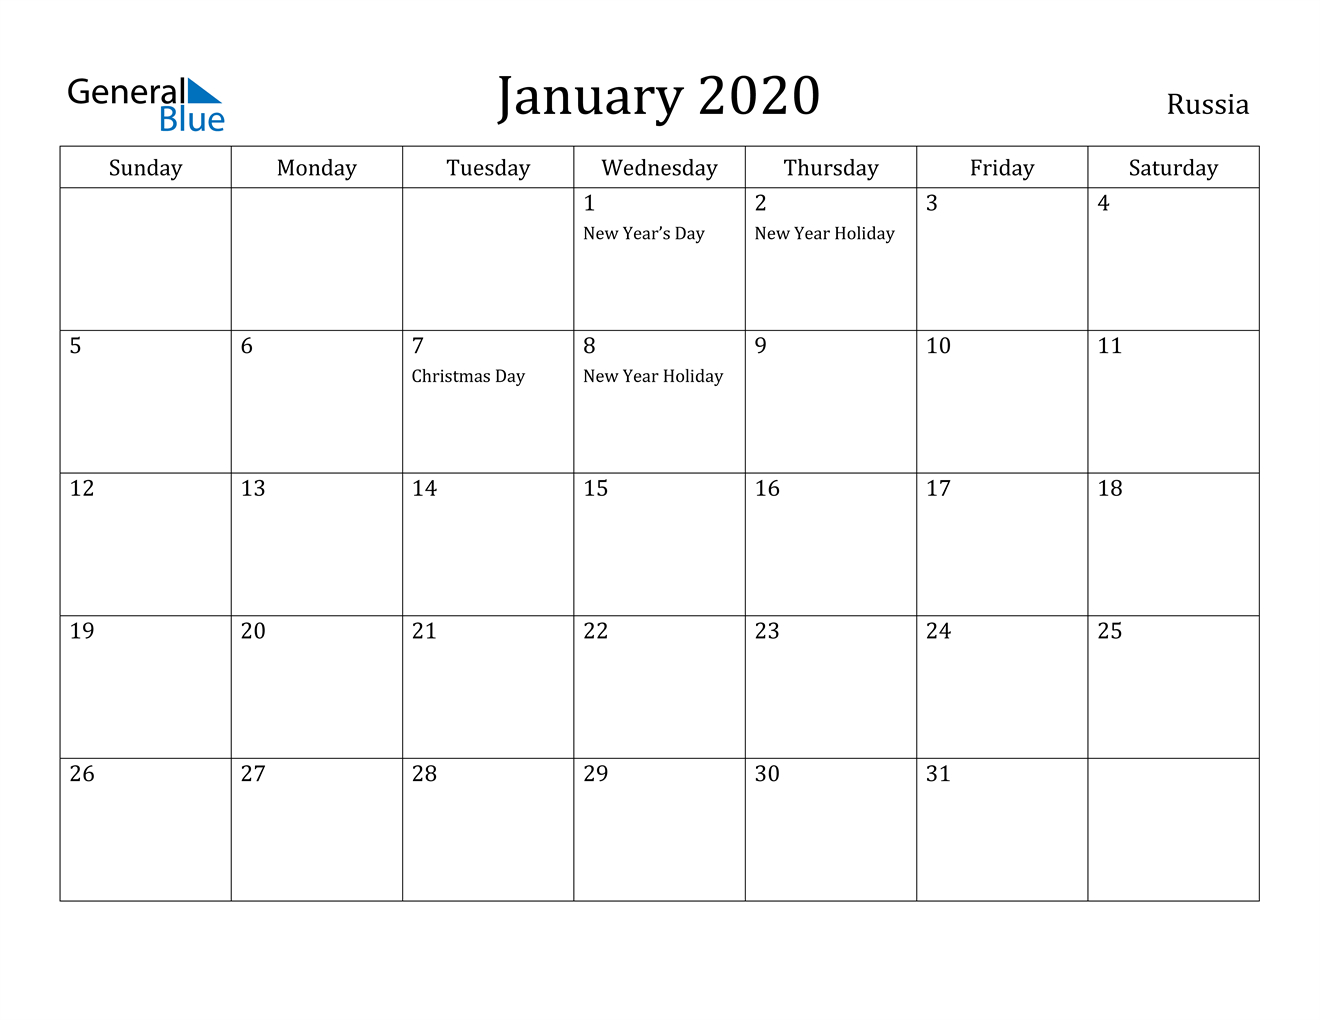 January 2020 Calendar  Russia pertaining to Calendar 2020 January